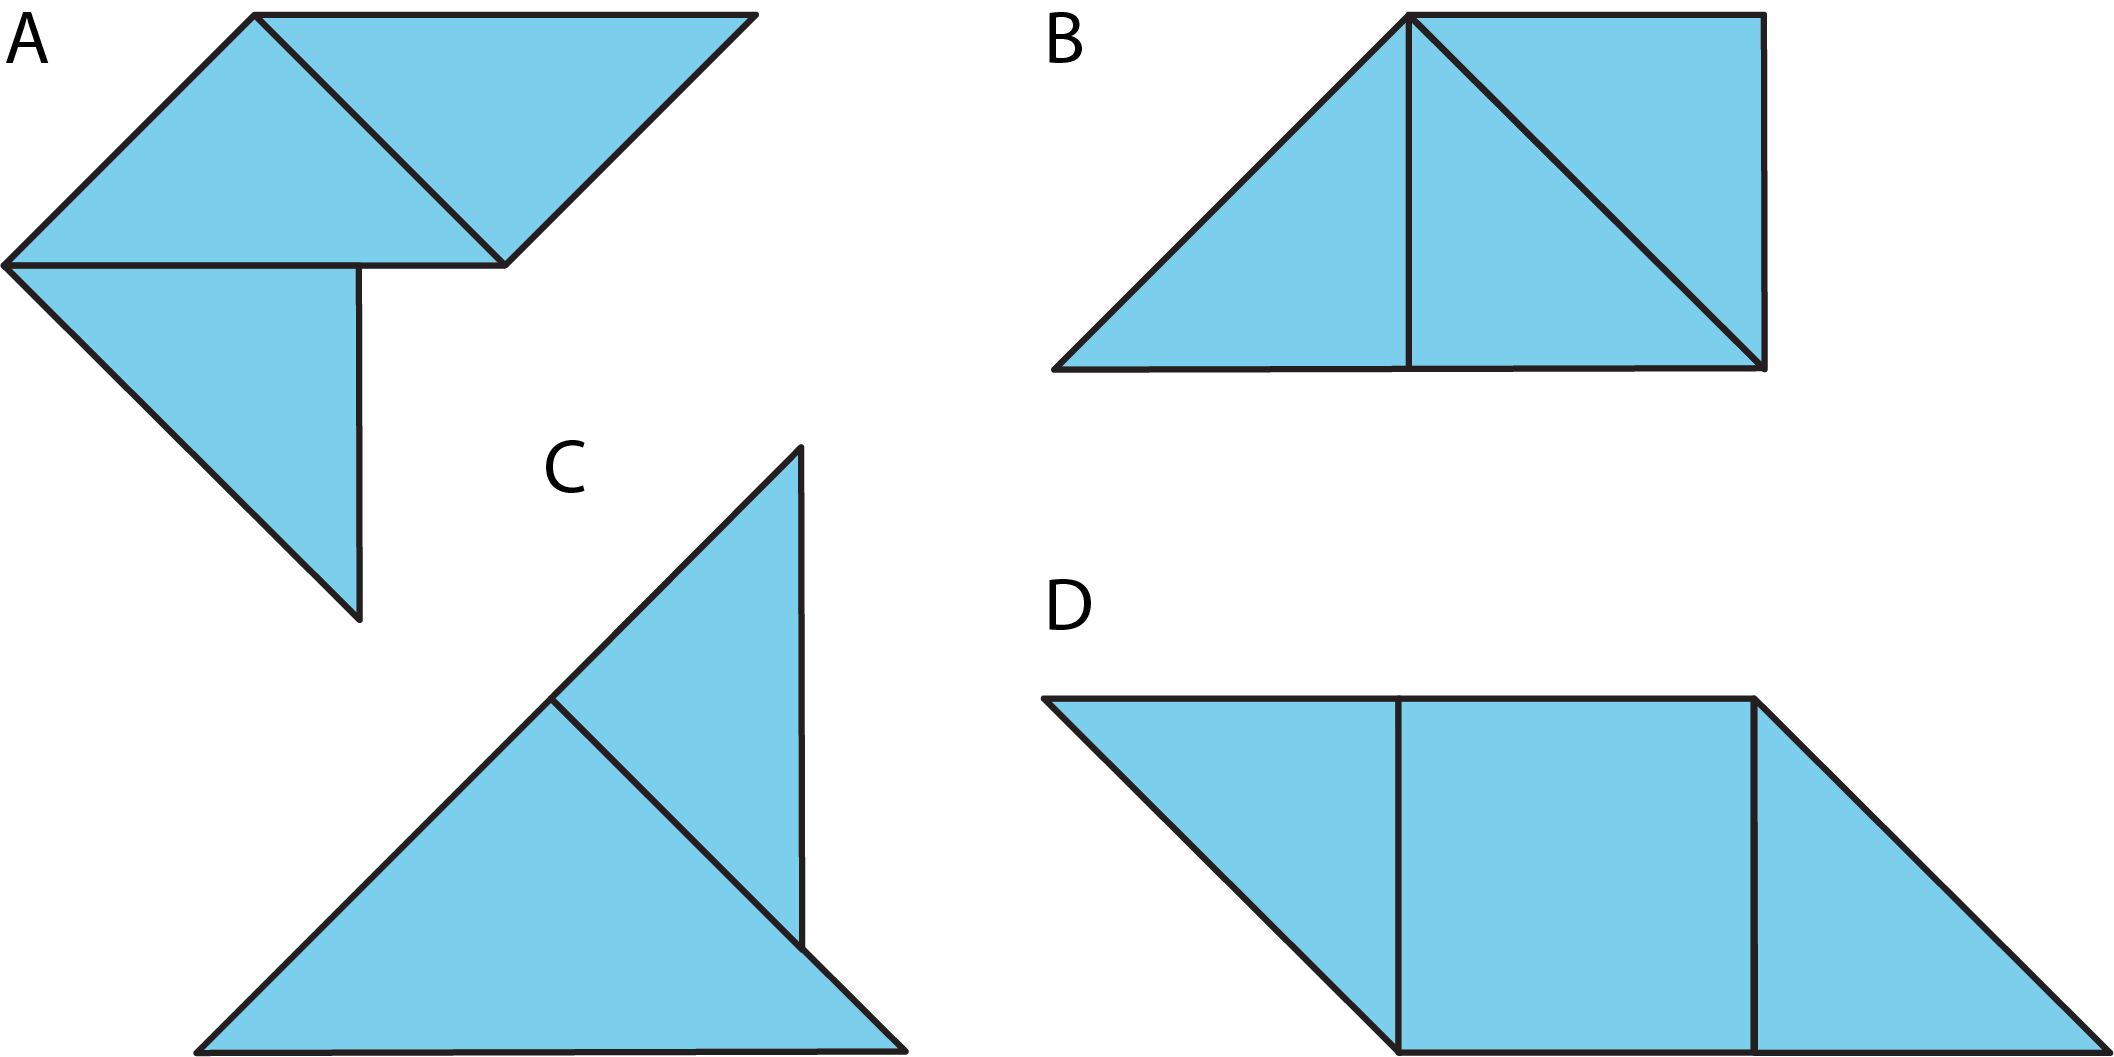 Four figures labeled A, B, C, and D. Figure A is composed of three small triangles, figure B is composed of three small triangles in a different arrangement, figure C is composed of one medium triangle and one small triangle, and figure D is composed of two small triangles and one square.